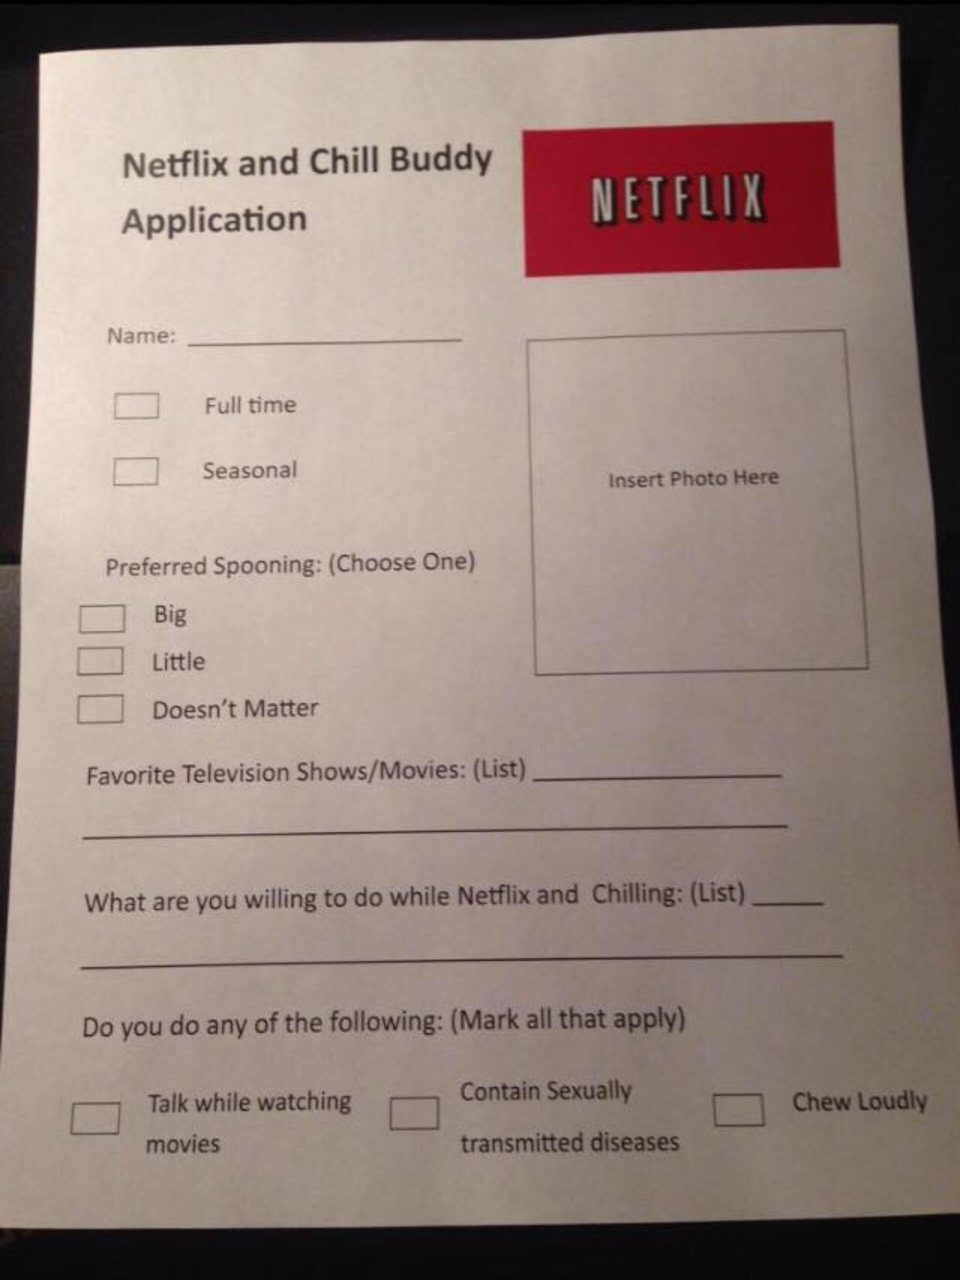 Fill out an application | Netflix and Chill | Know Your Meme